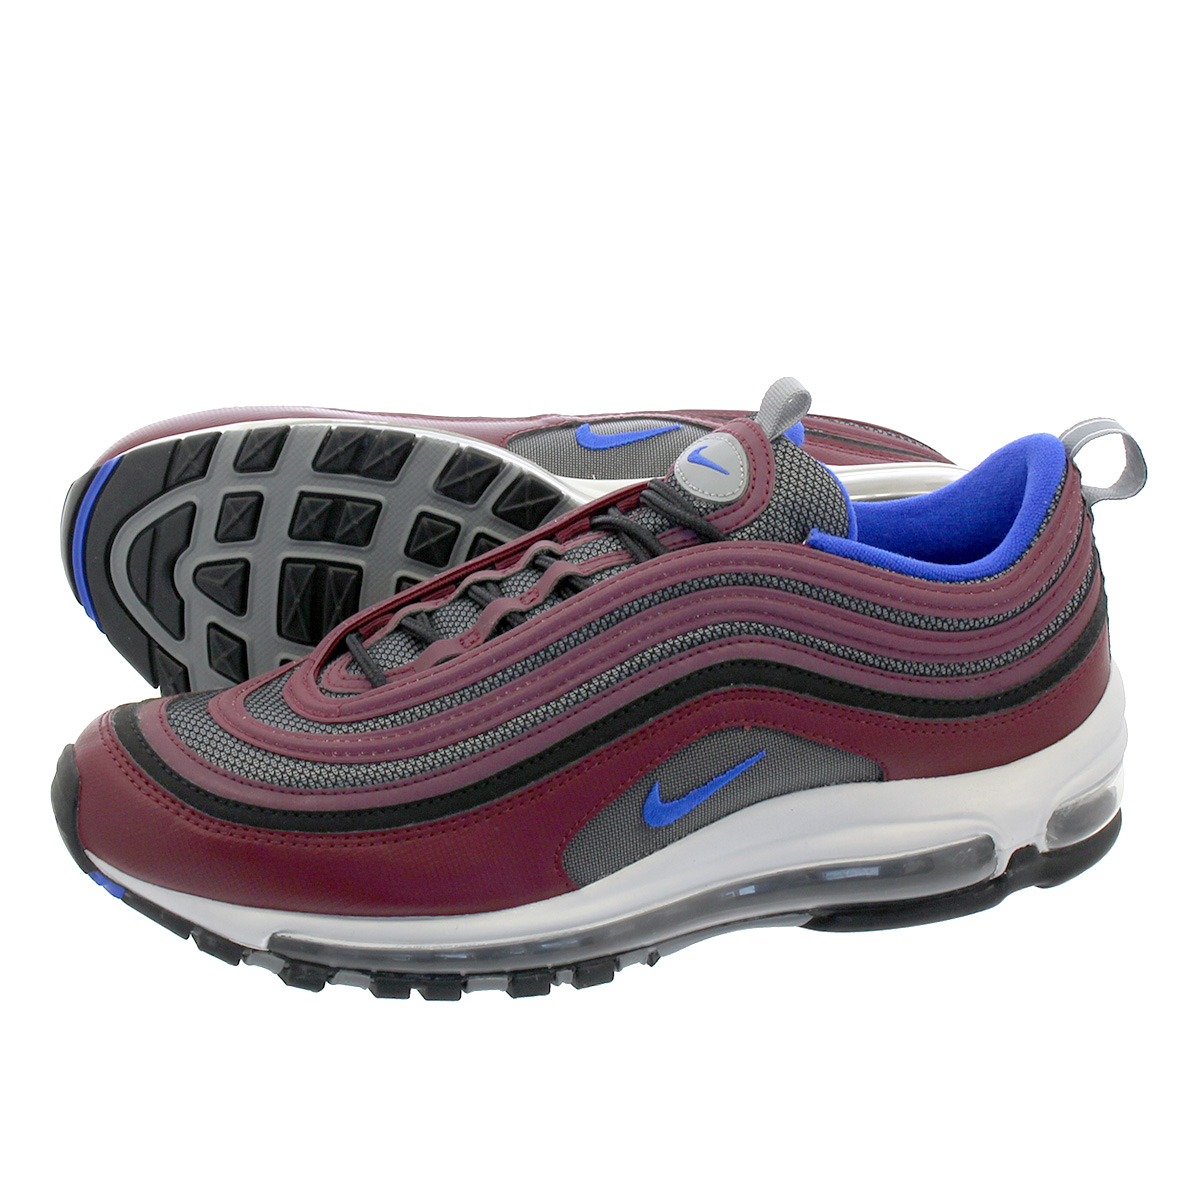 NIKE AIR MAX 97 ナイキ エア マックス 97 COOL GREY/NIGHT MAROON/RACER BLUE/PURE PLAINUM 921826-012